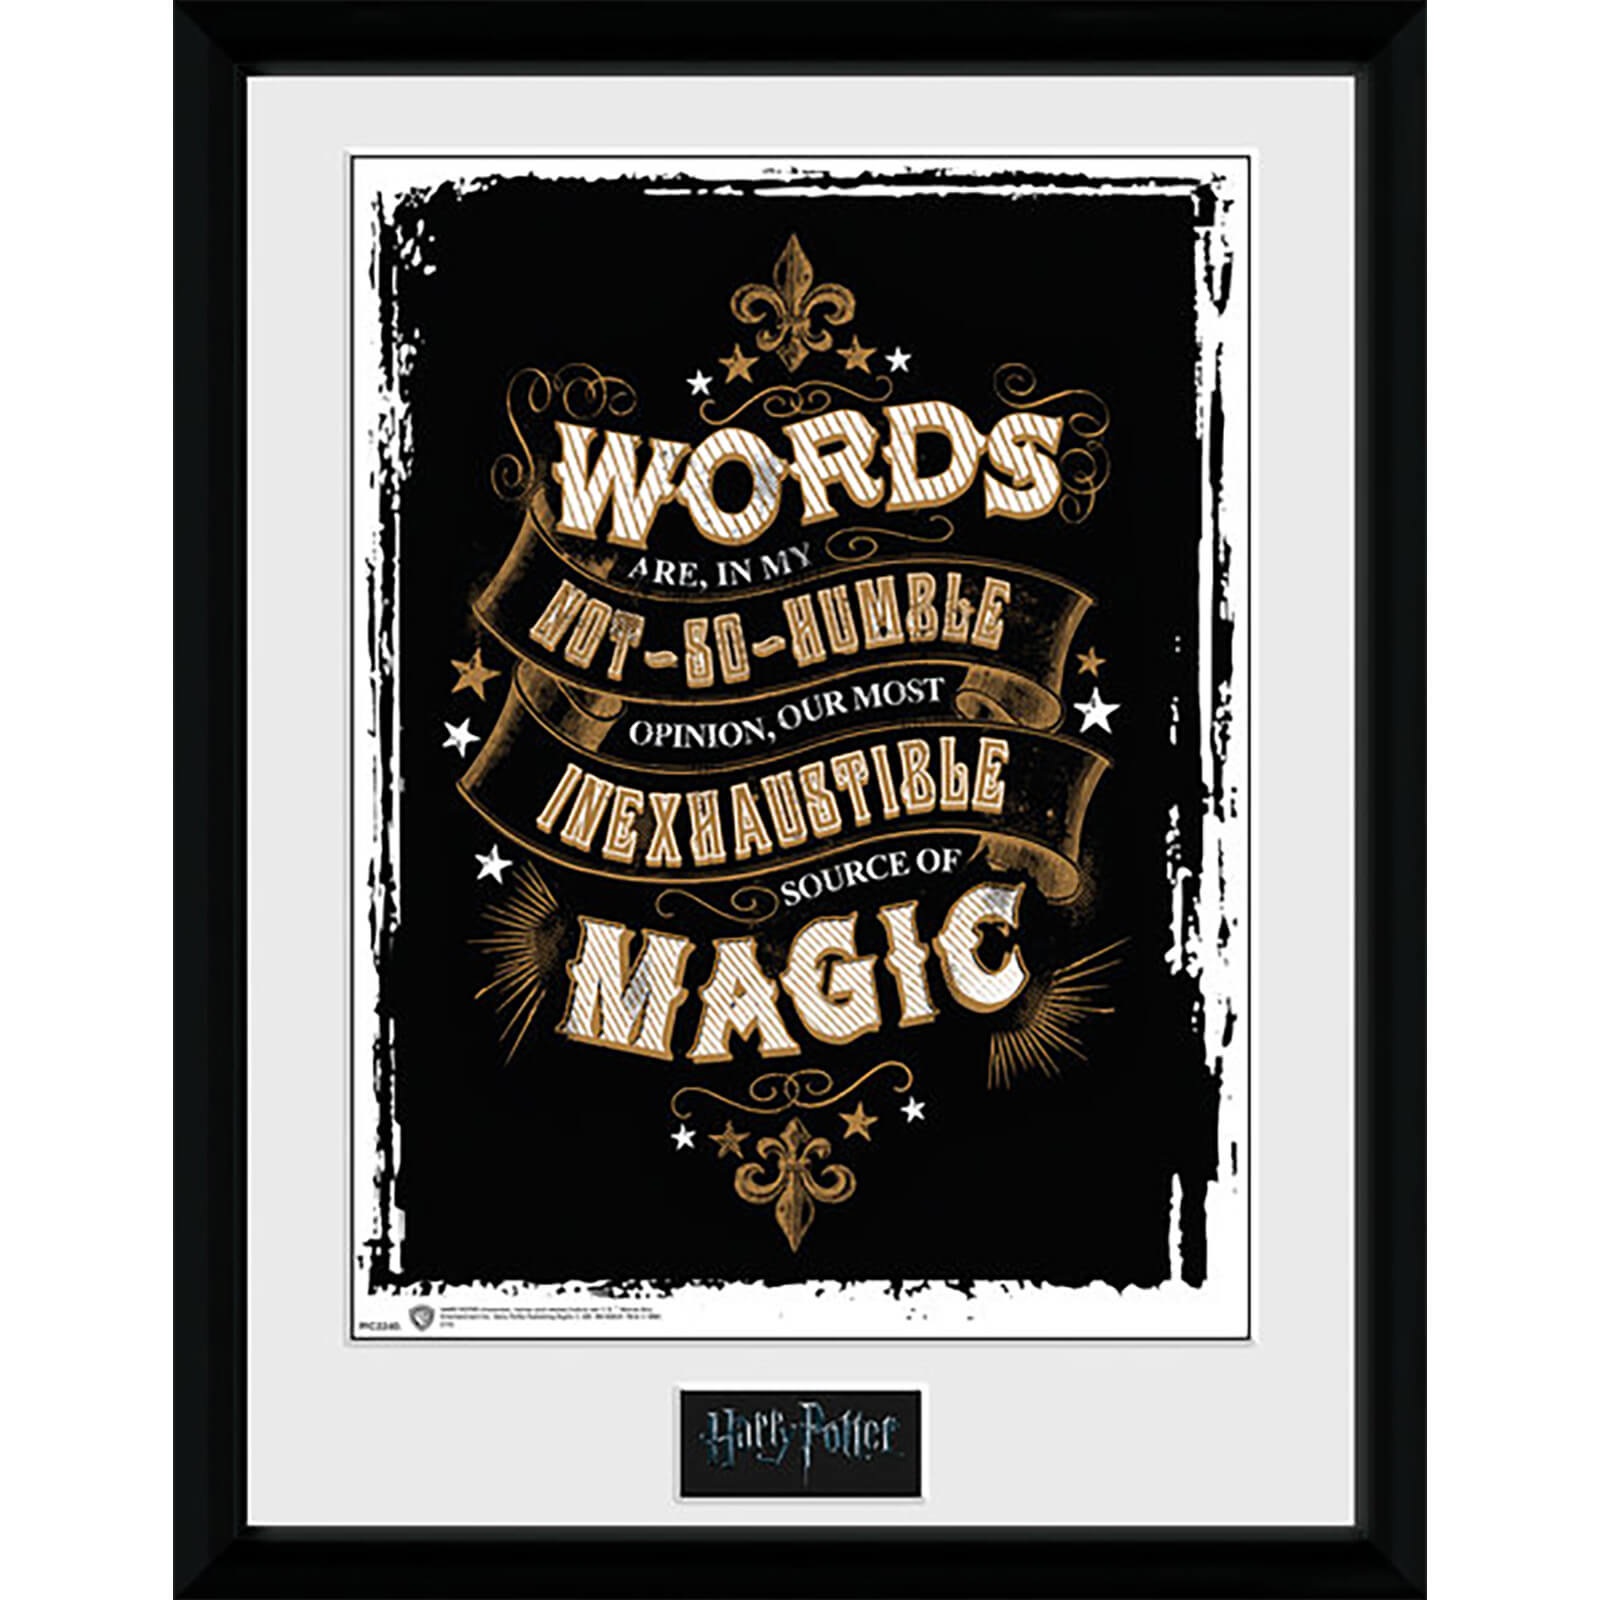 Harry Potter Words - 16 x 12 Inches Framed Photograph